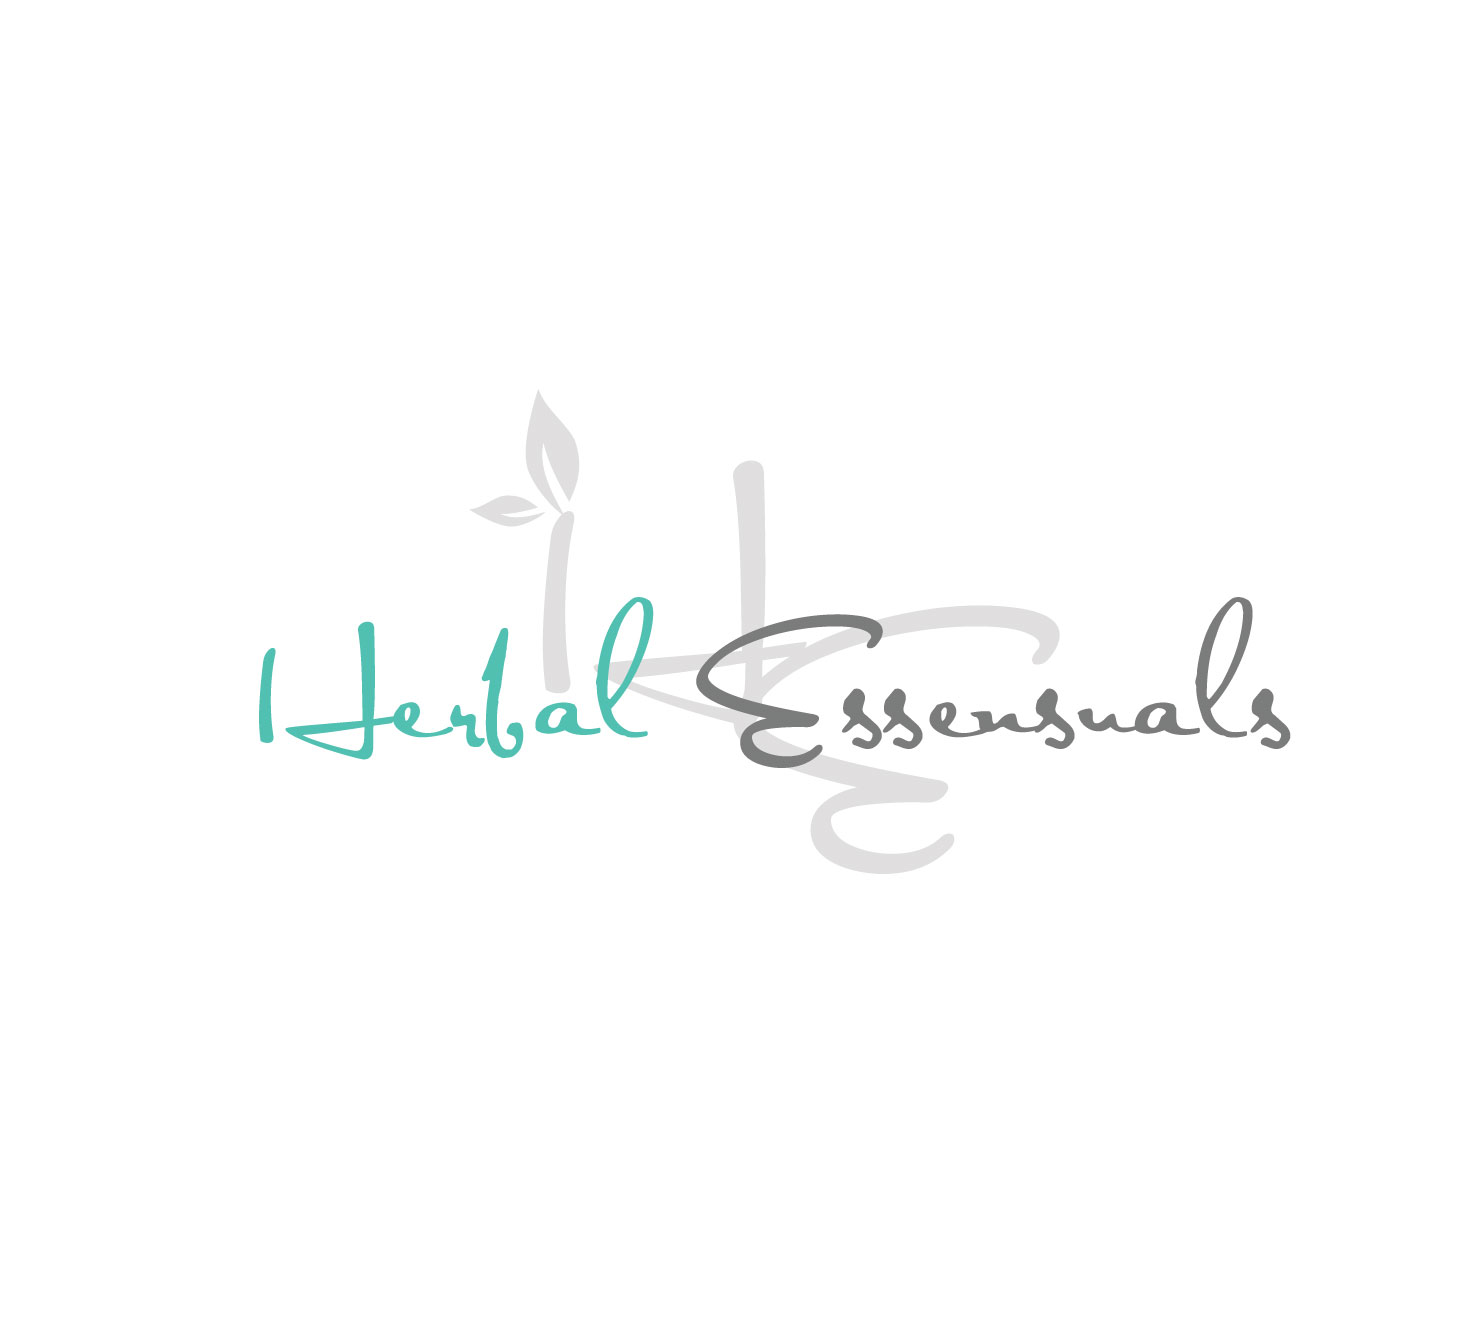 Logo Design by Darina Dimitrova - Entry No. 8 in the Logo Design Contest Captivating Logo Design for Herbal Essensuals.